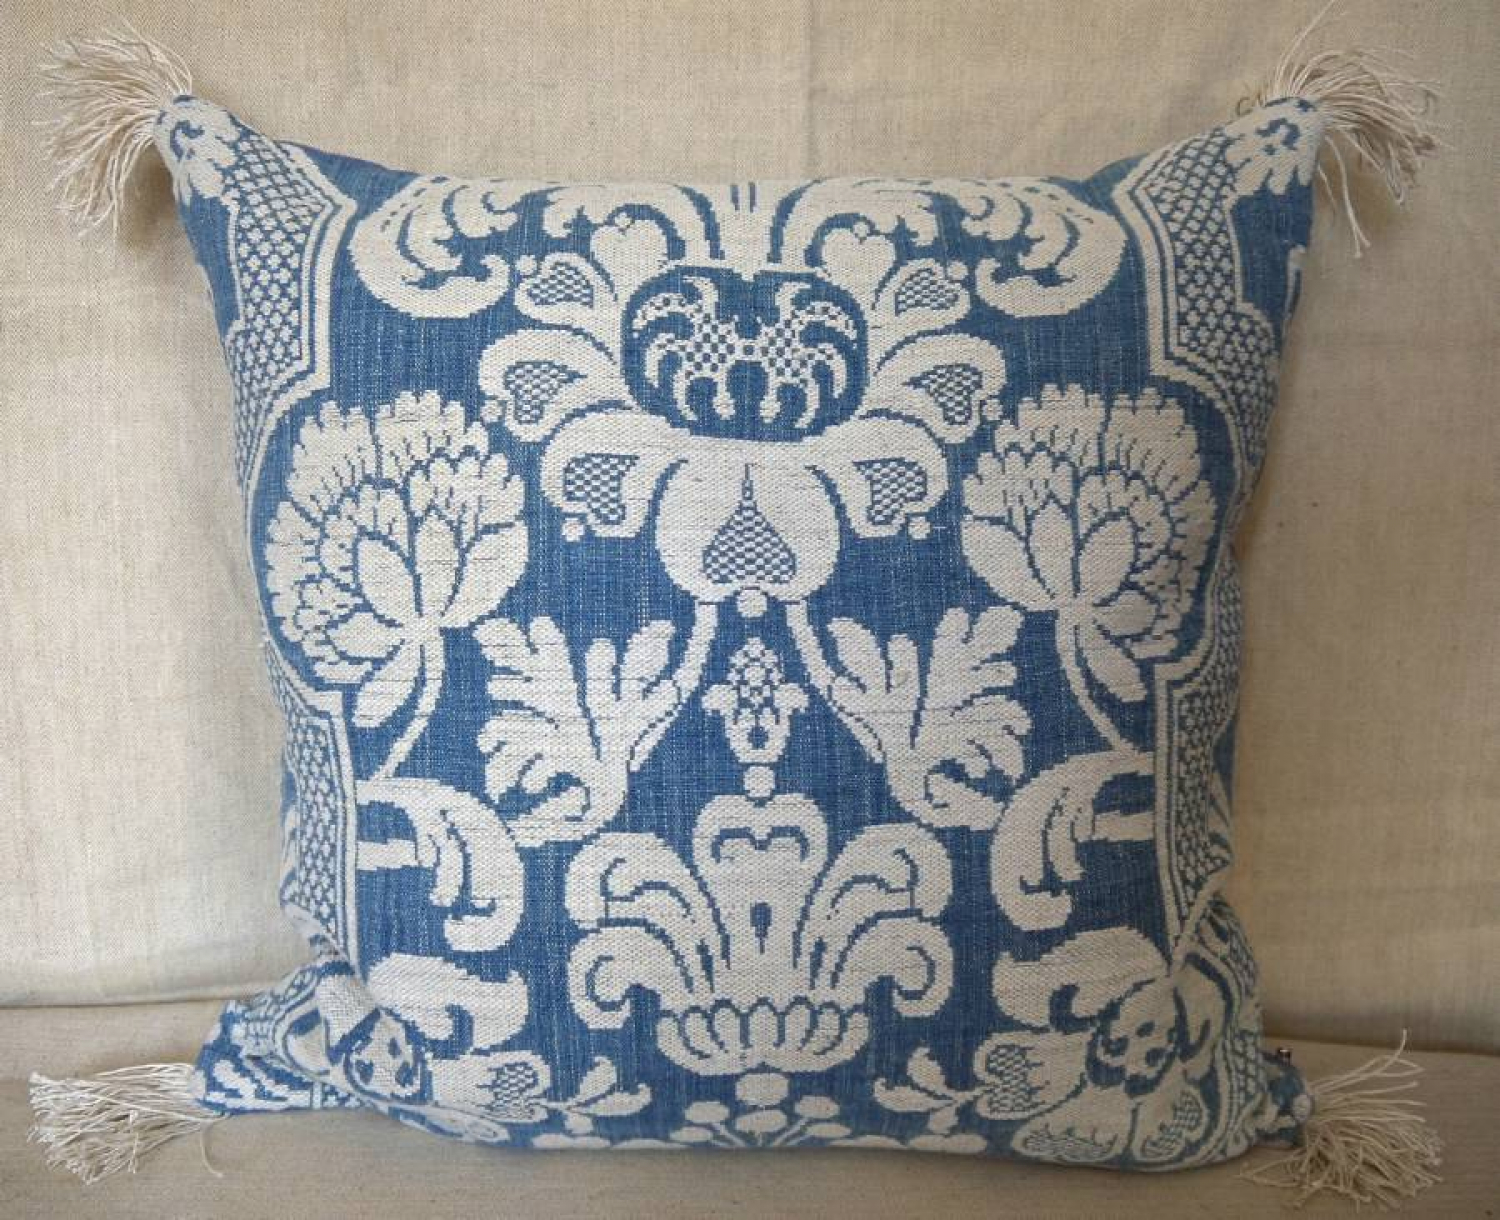 Toile d`Abbeville Cushion